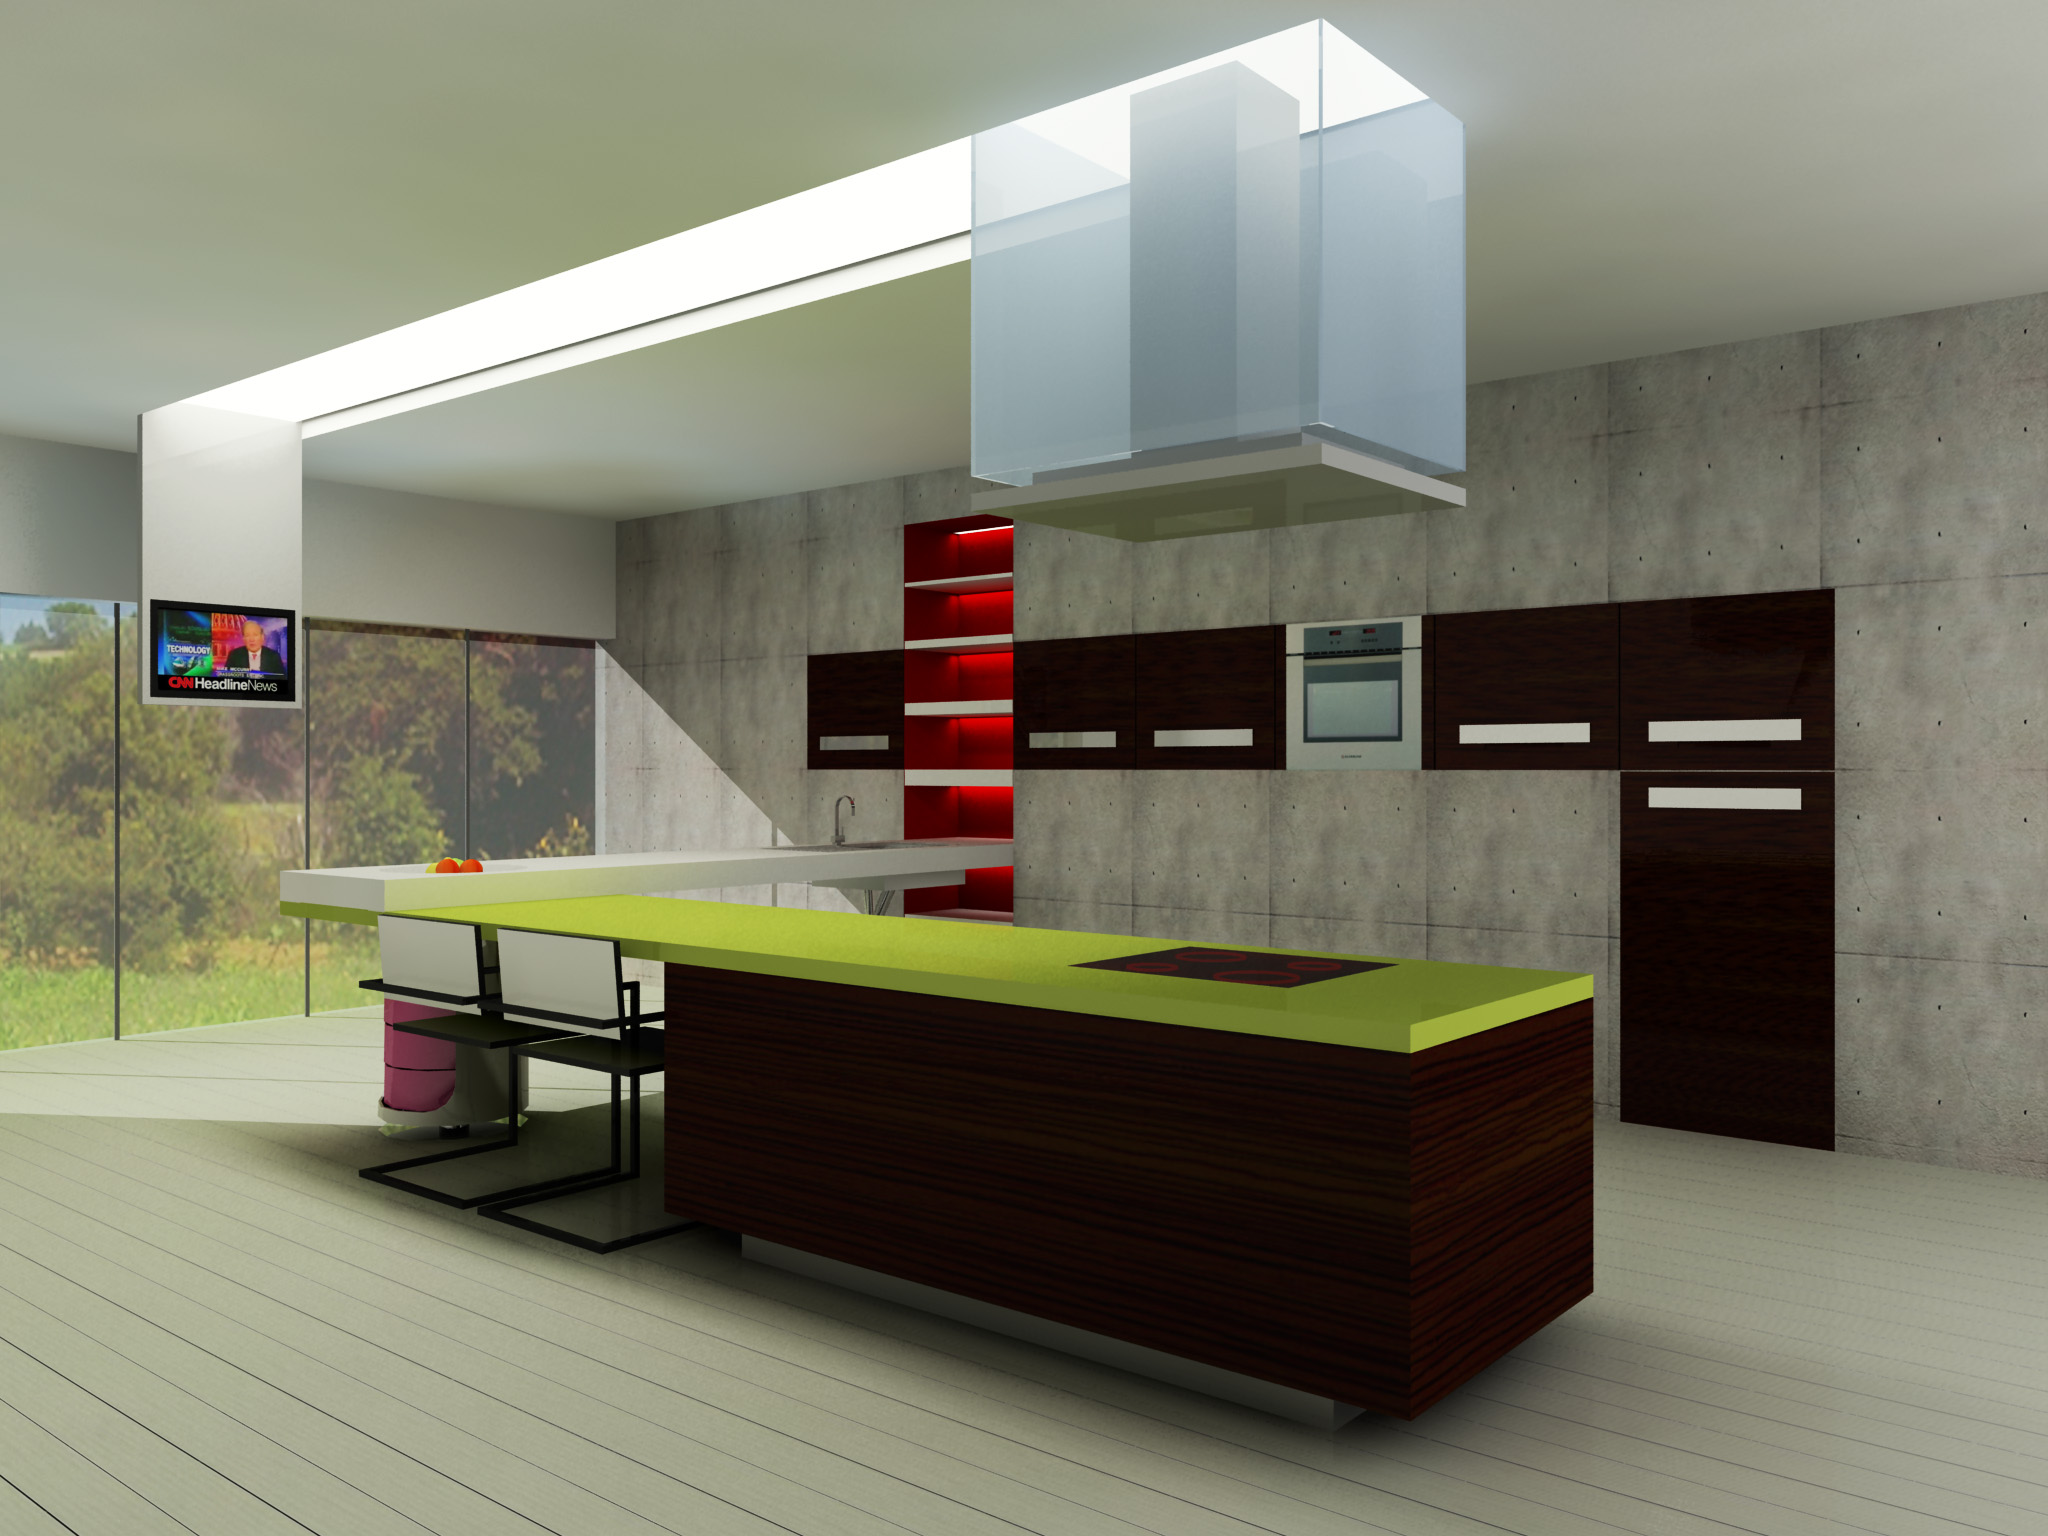 kitchen design competitions silverline kitchen design competition 2nd prize by selami 322